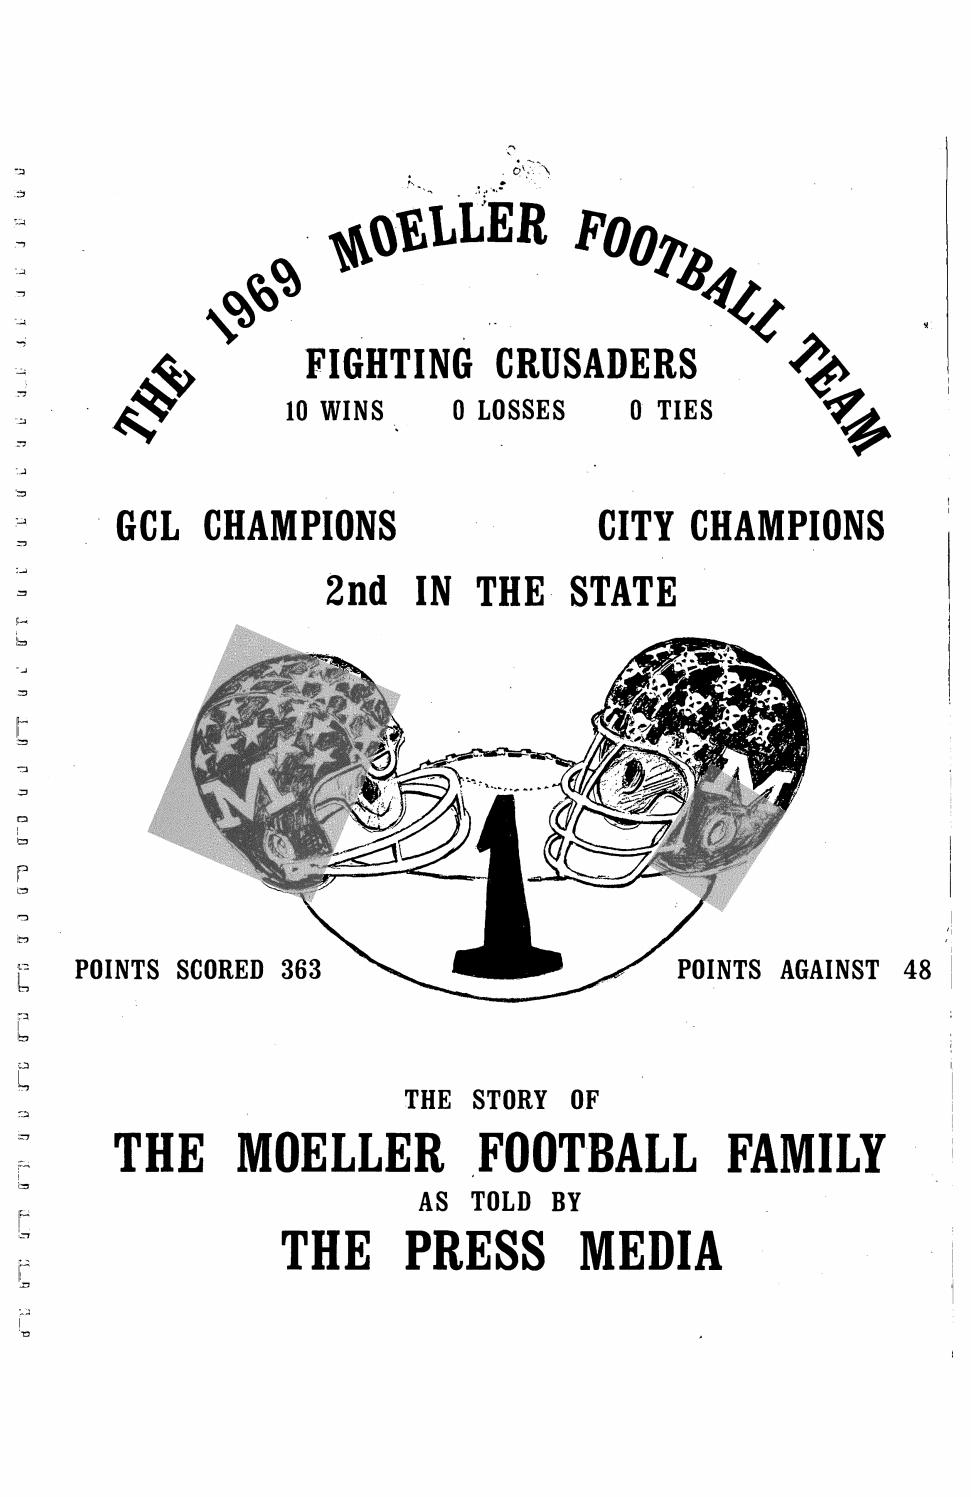 Moeller High School 1969-70 Football News Articles by Archbishop ...